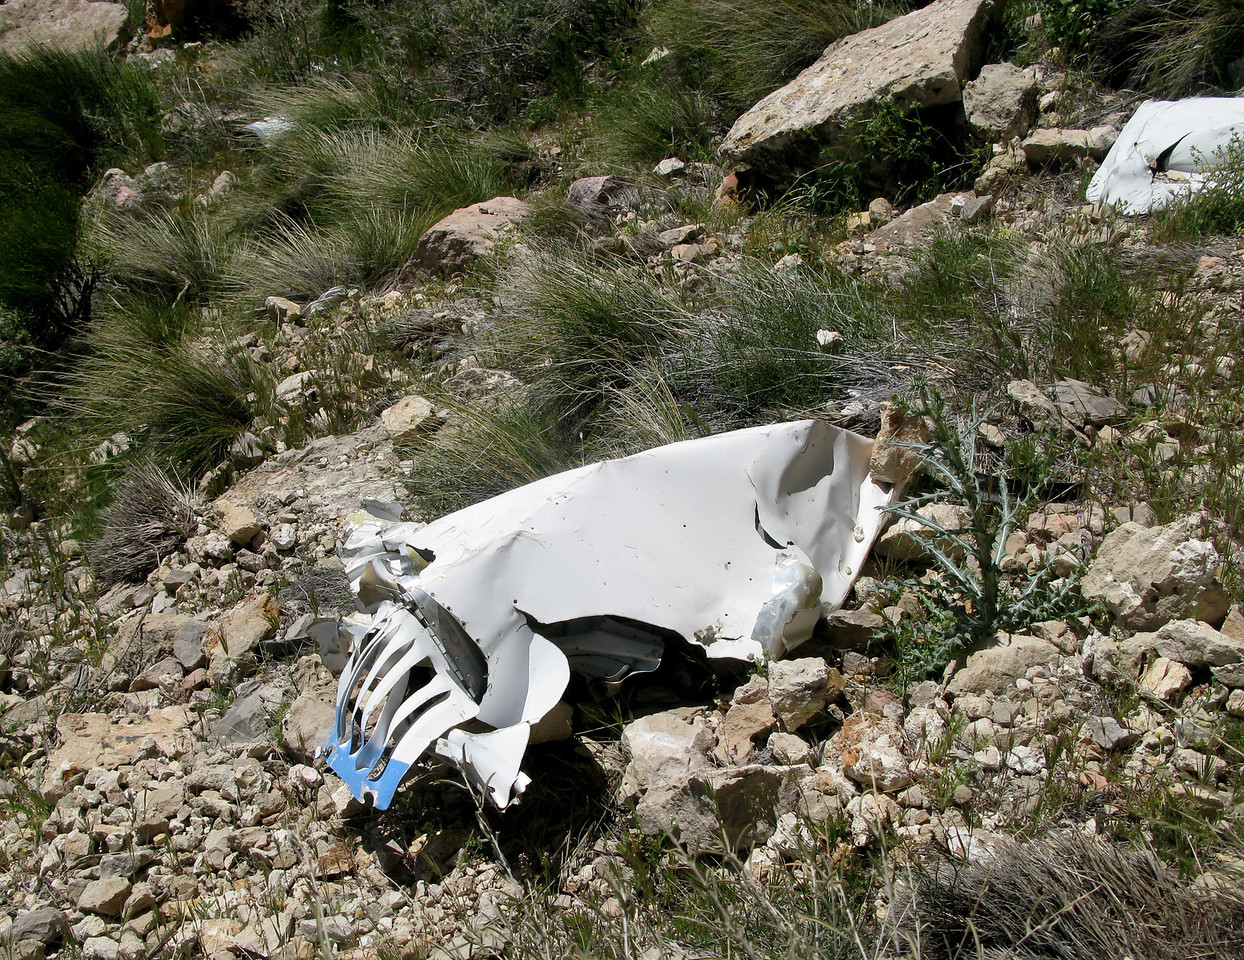 After hiking for just over two hours I finally reached the crash site. <br /> <br /> The first fragment I encountered was a portion of an engine nacelle cowling with a vented inspection door.